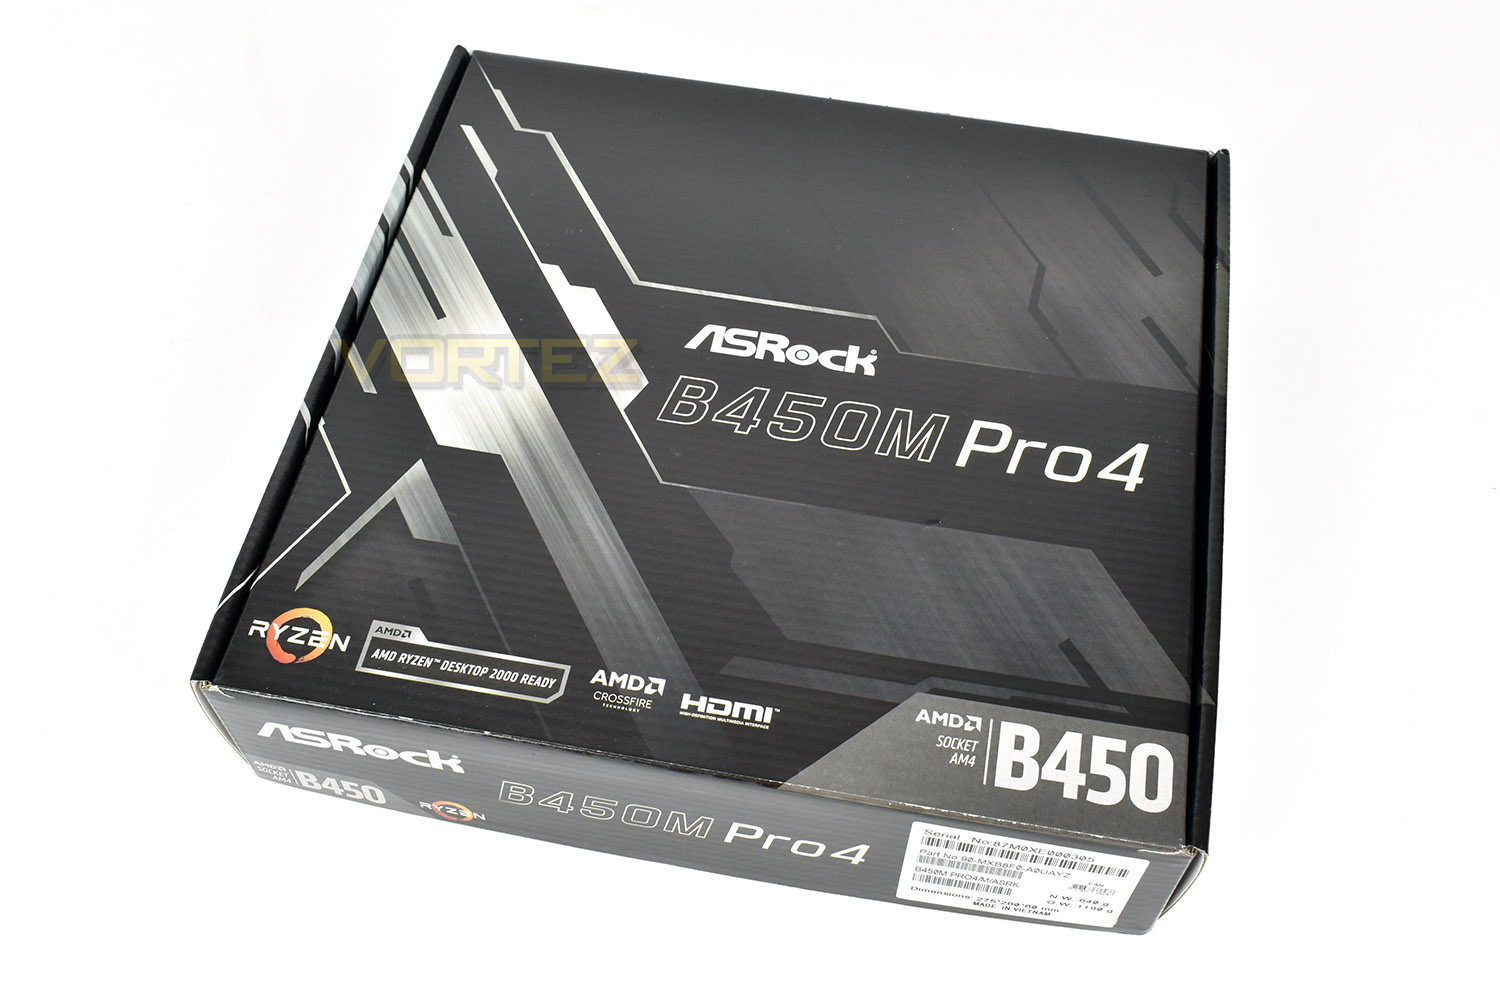 ASRock B450M Pro4 Review - Packaging & First Look